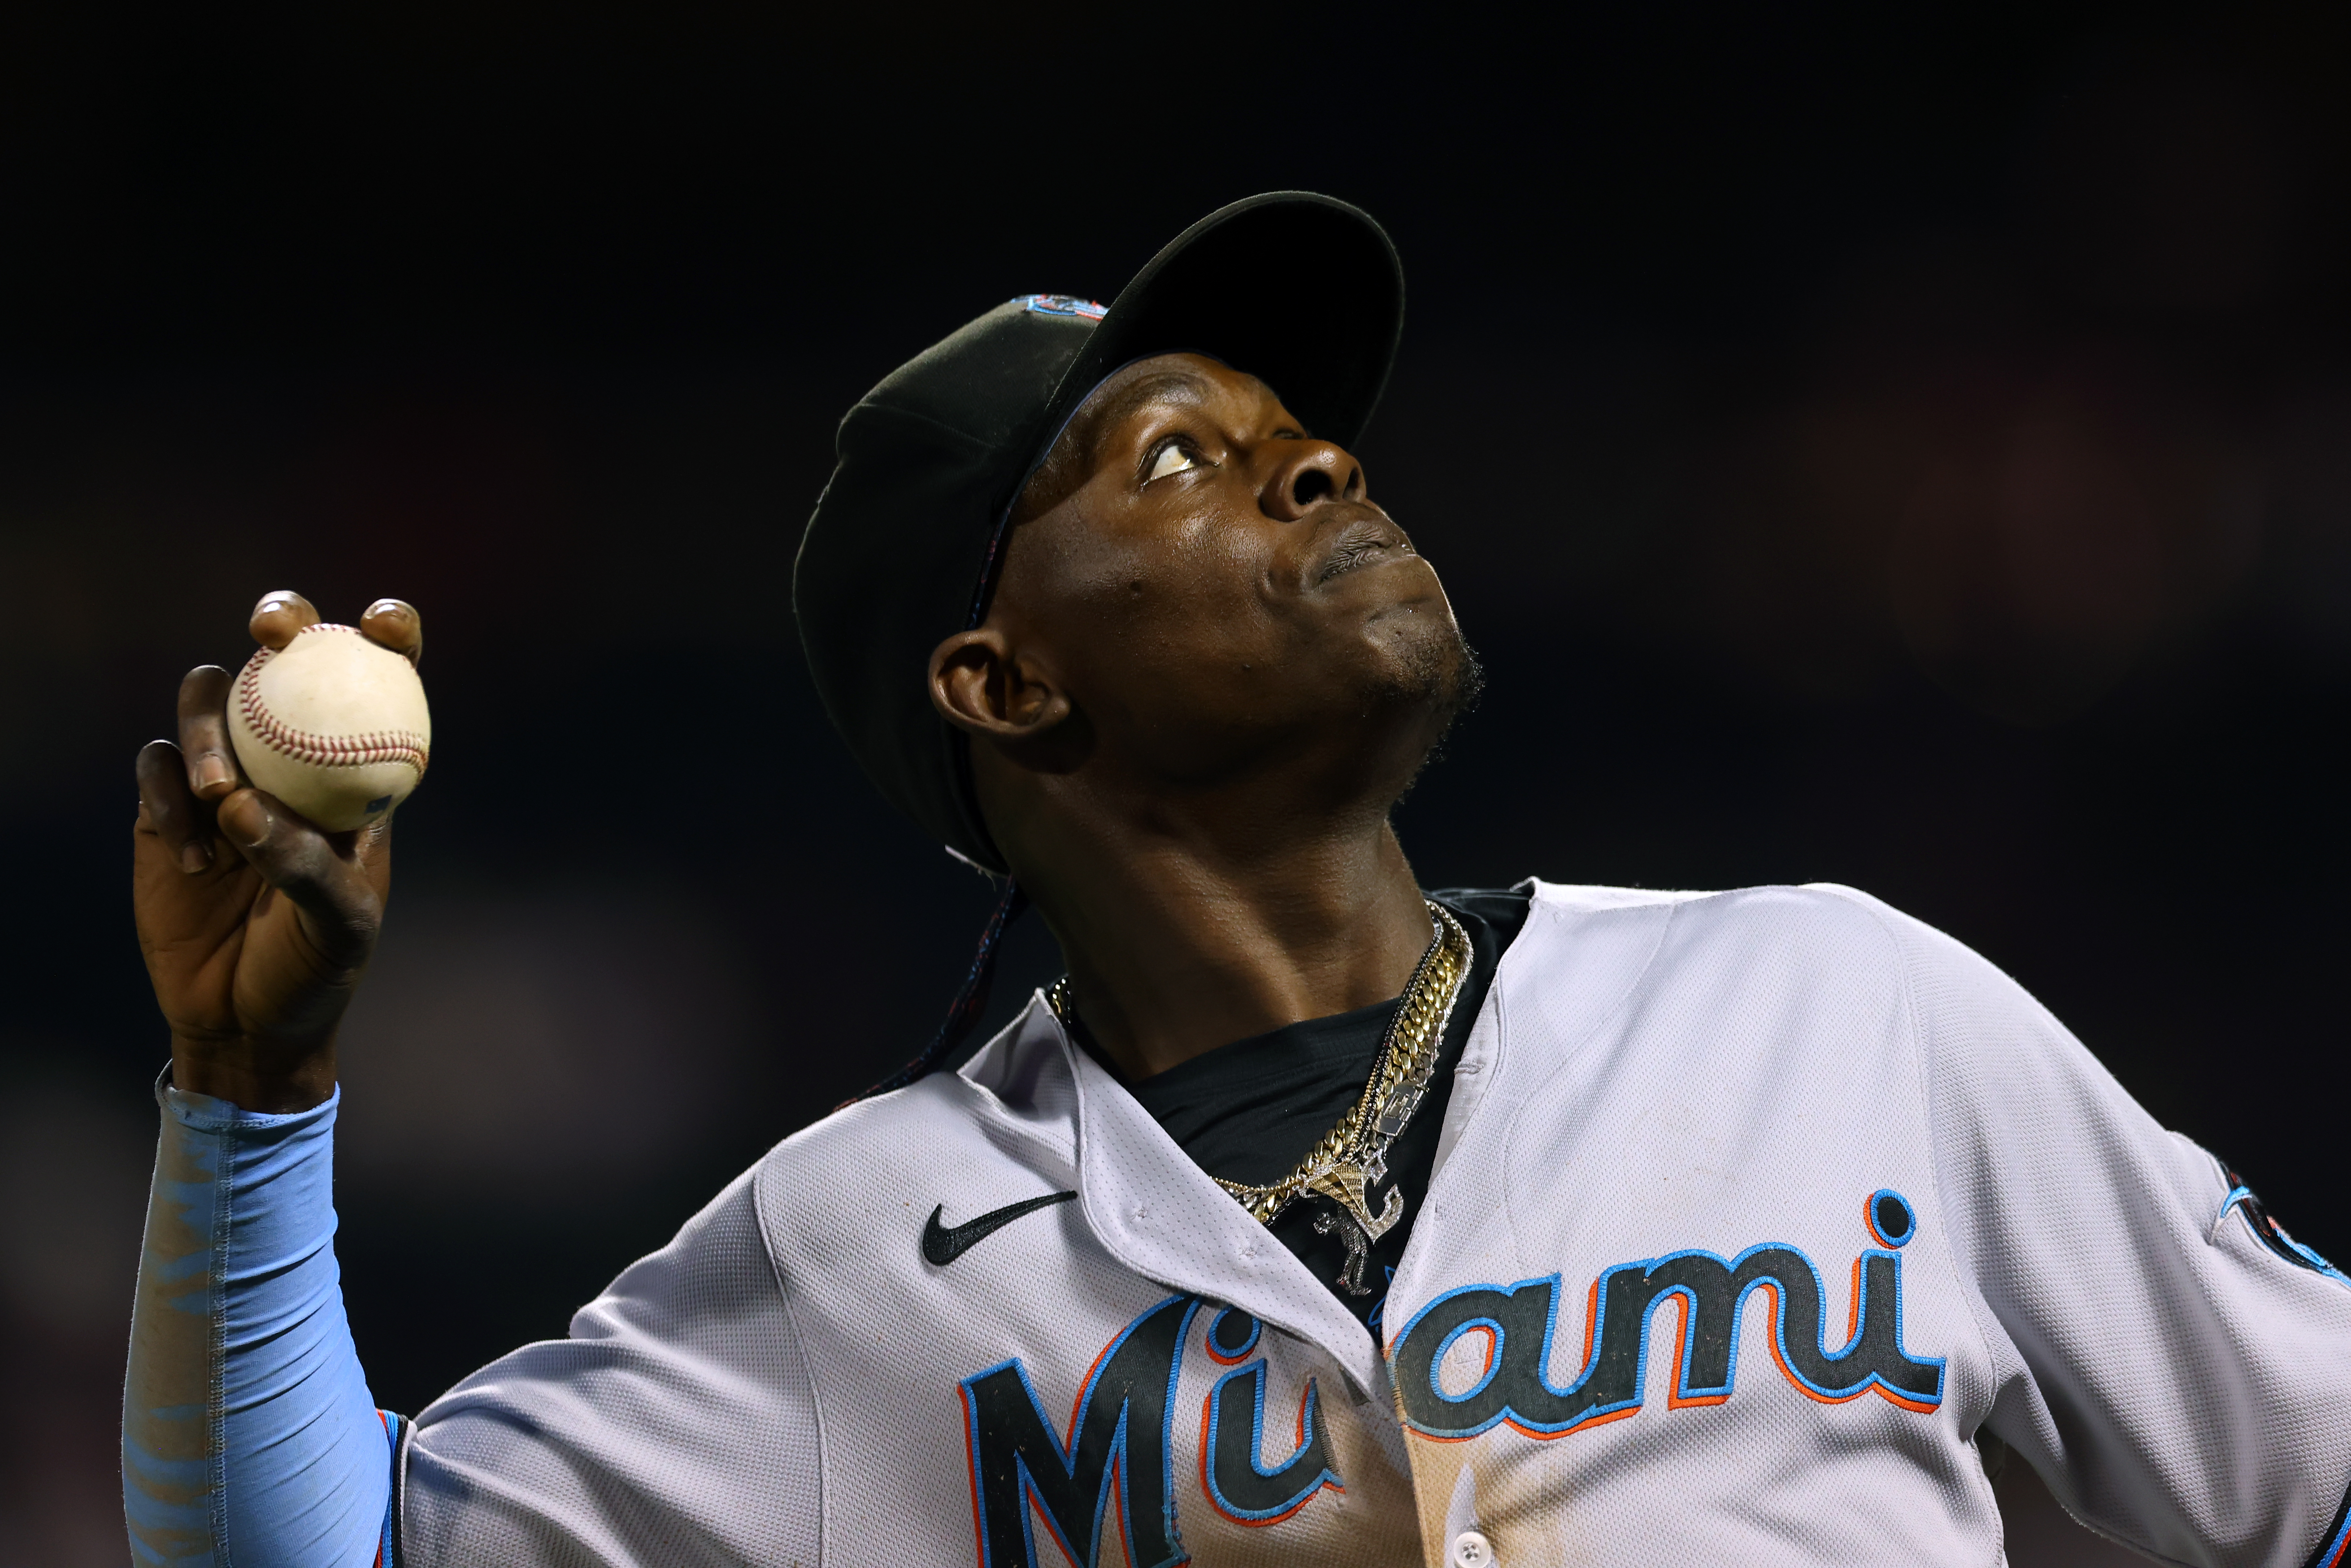 Jazz Chisholm Jr. #2 of the Miami Marlins in action against the New York Mets during a game at Citi Field